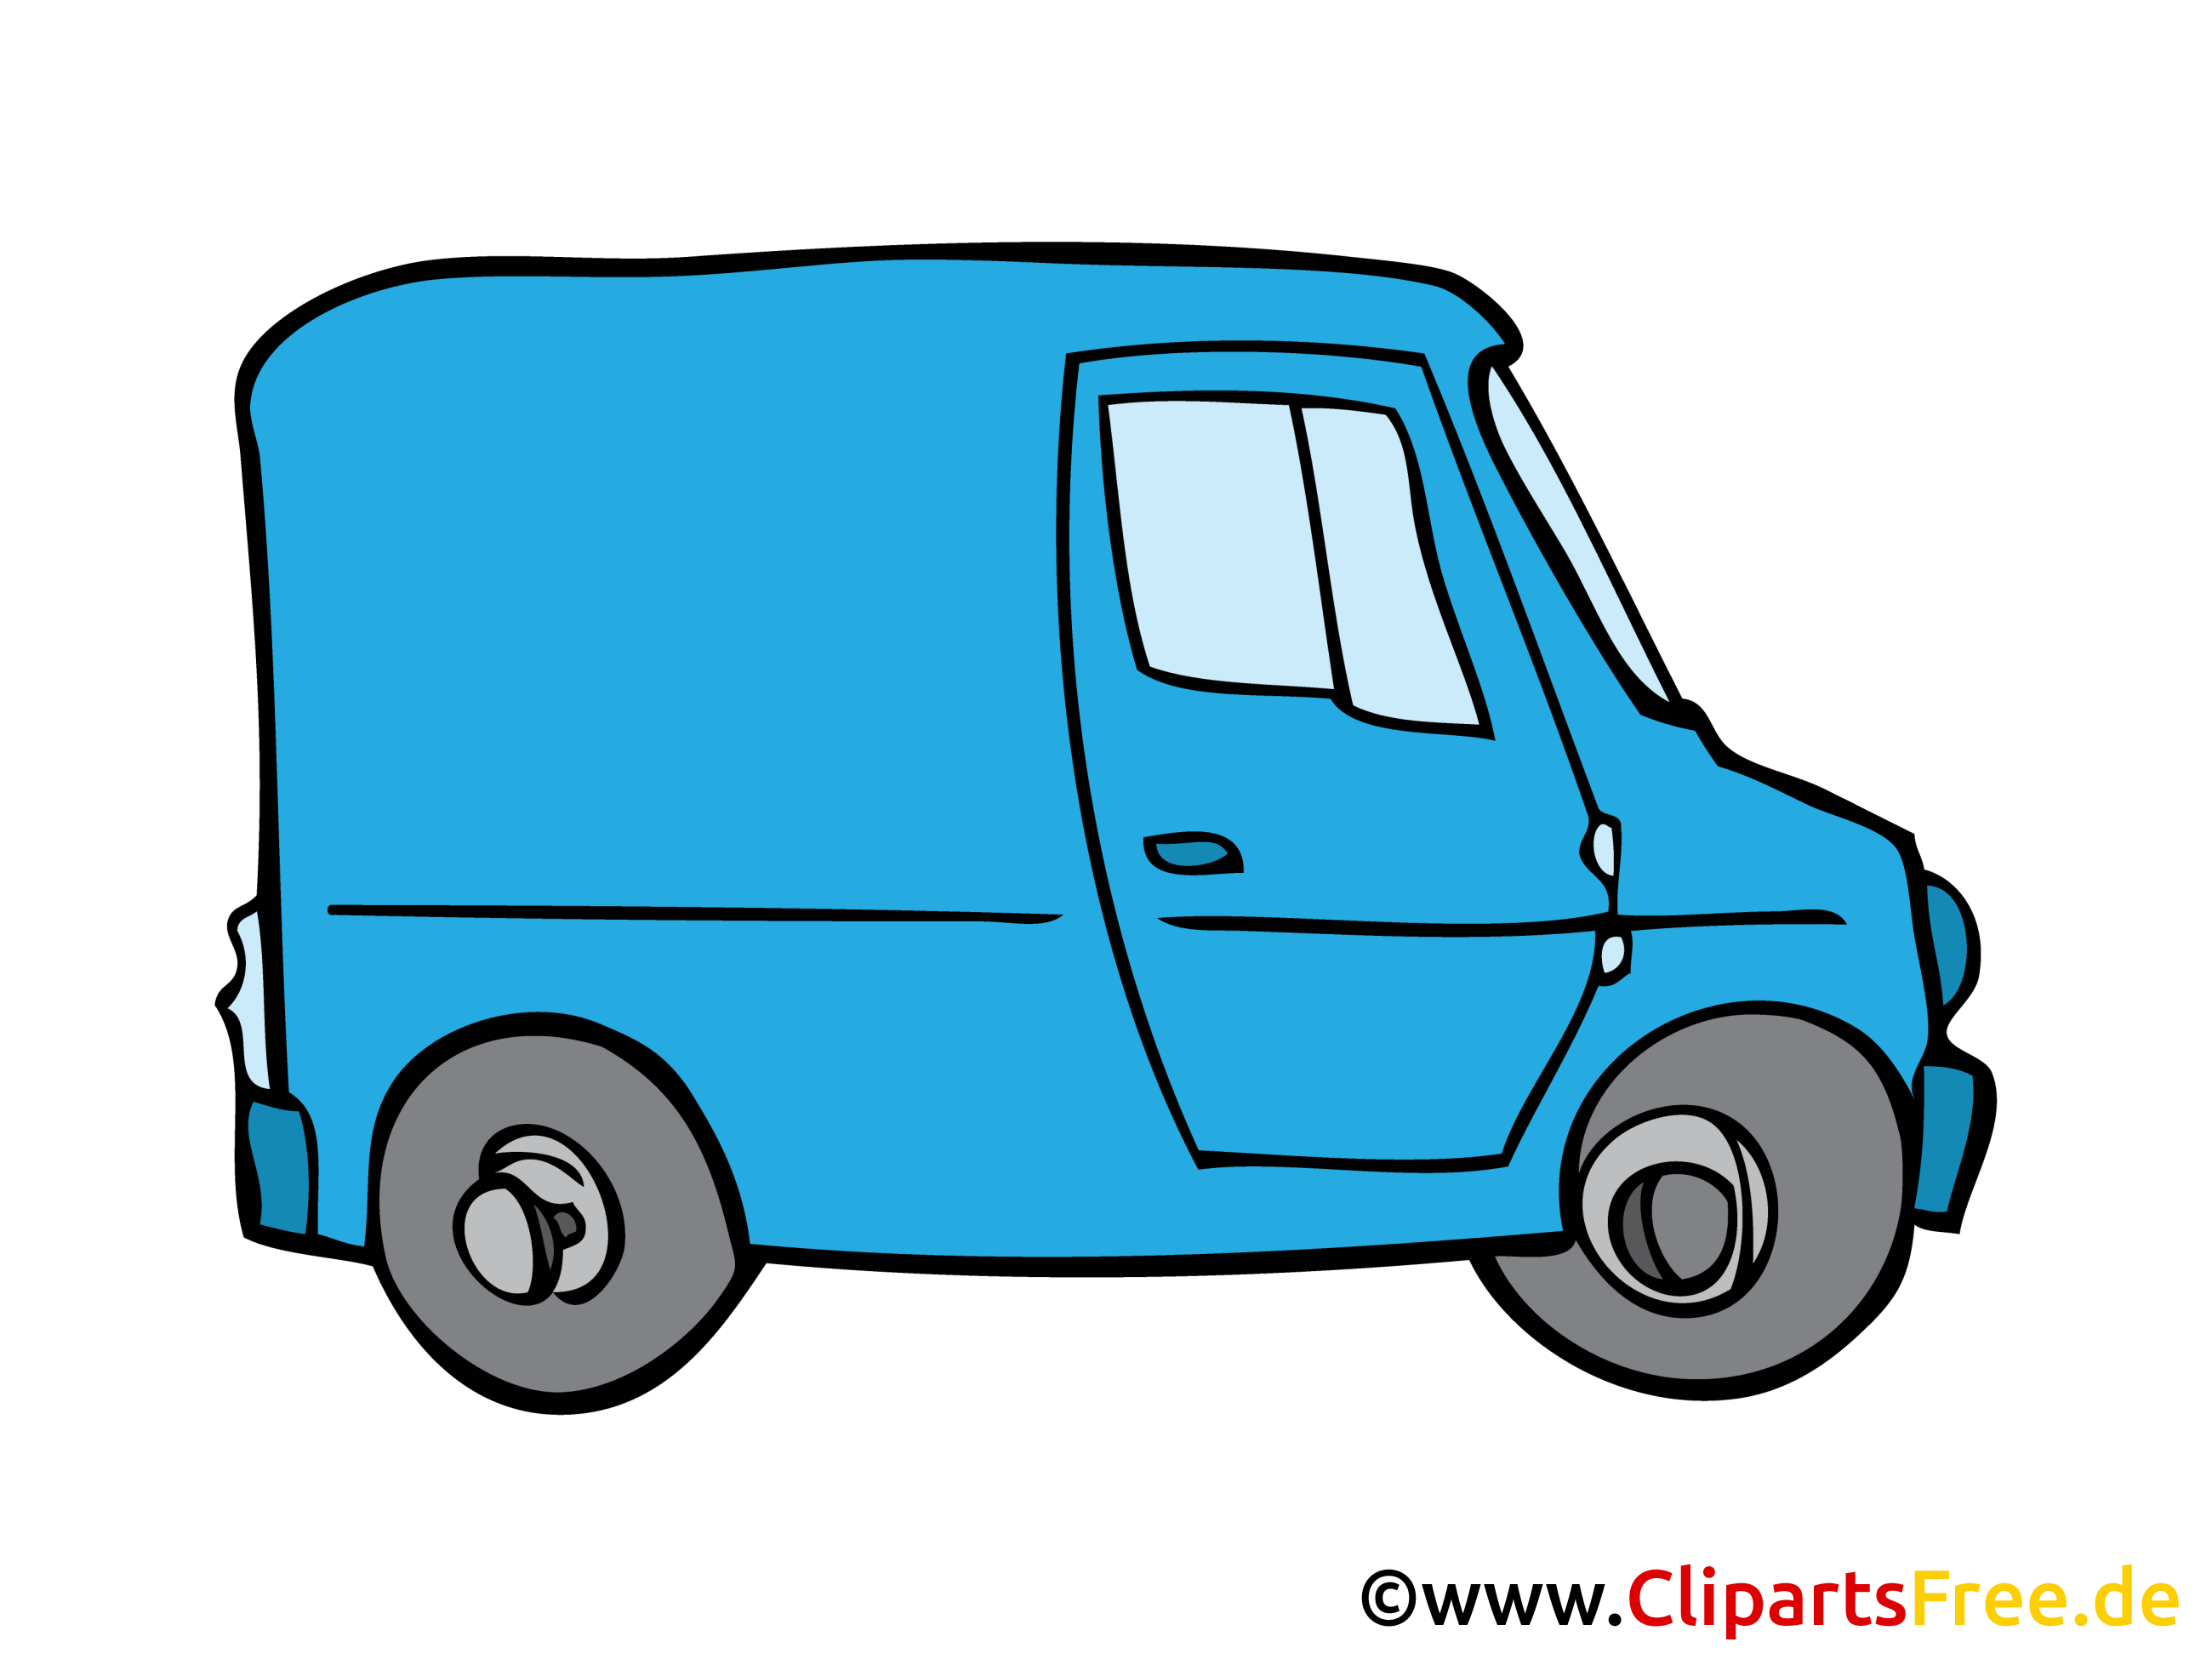 Cliparts transporter kostenlos image royalty free library Cliparts transporter kostenlos - ClipartFest image royalty free library